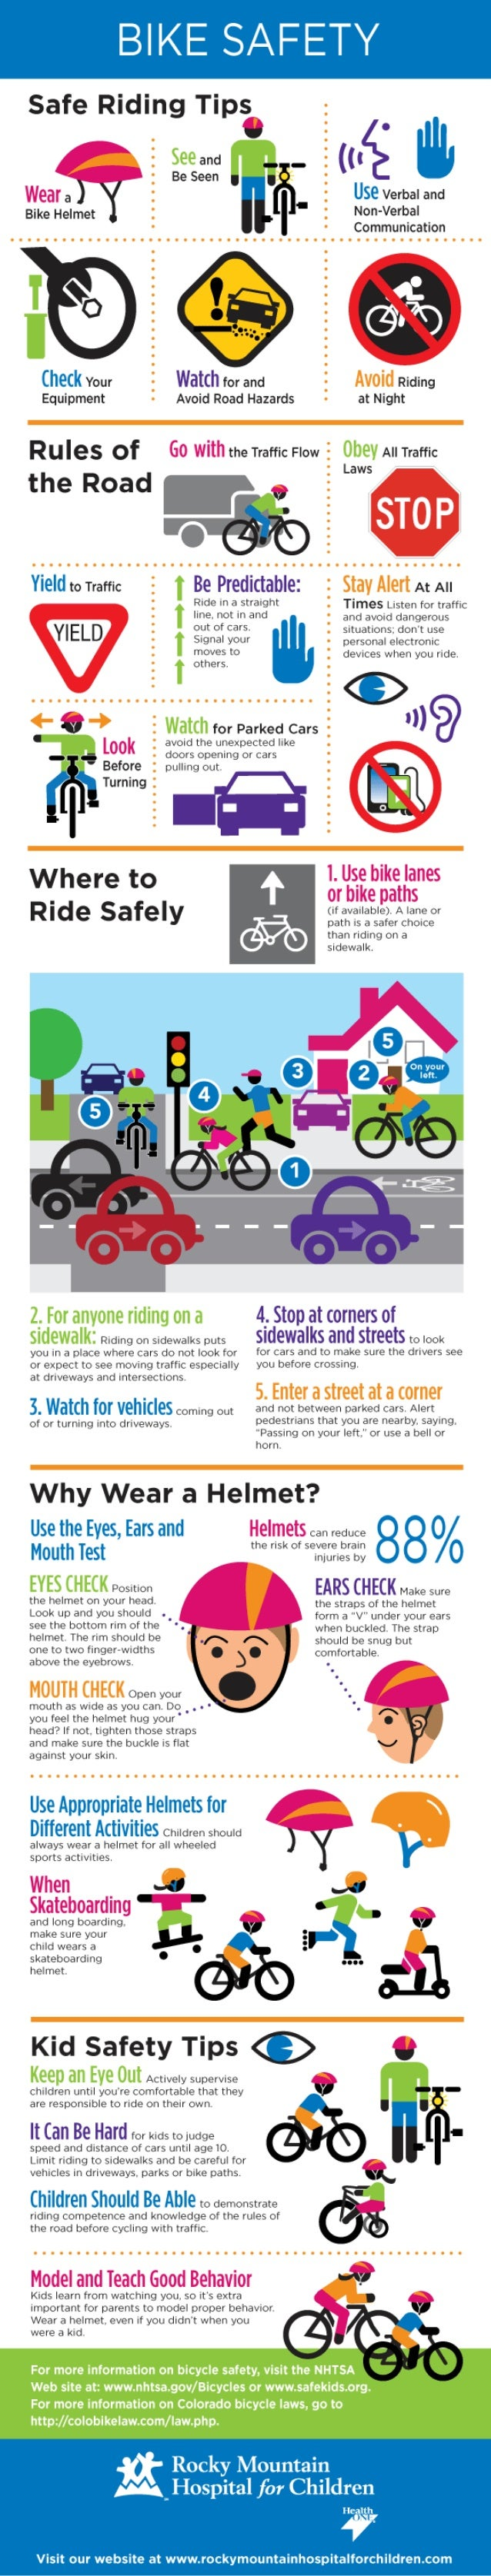 Rocky Mountain Hospital for Children: Bike Safety Infographic